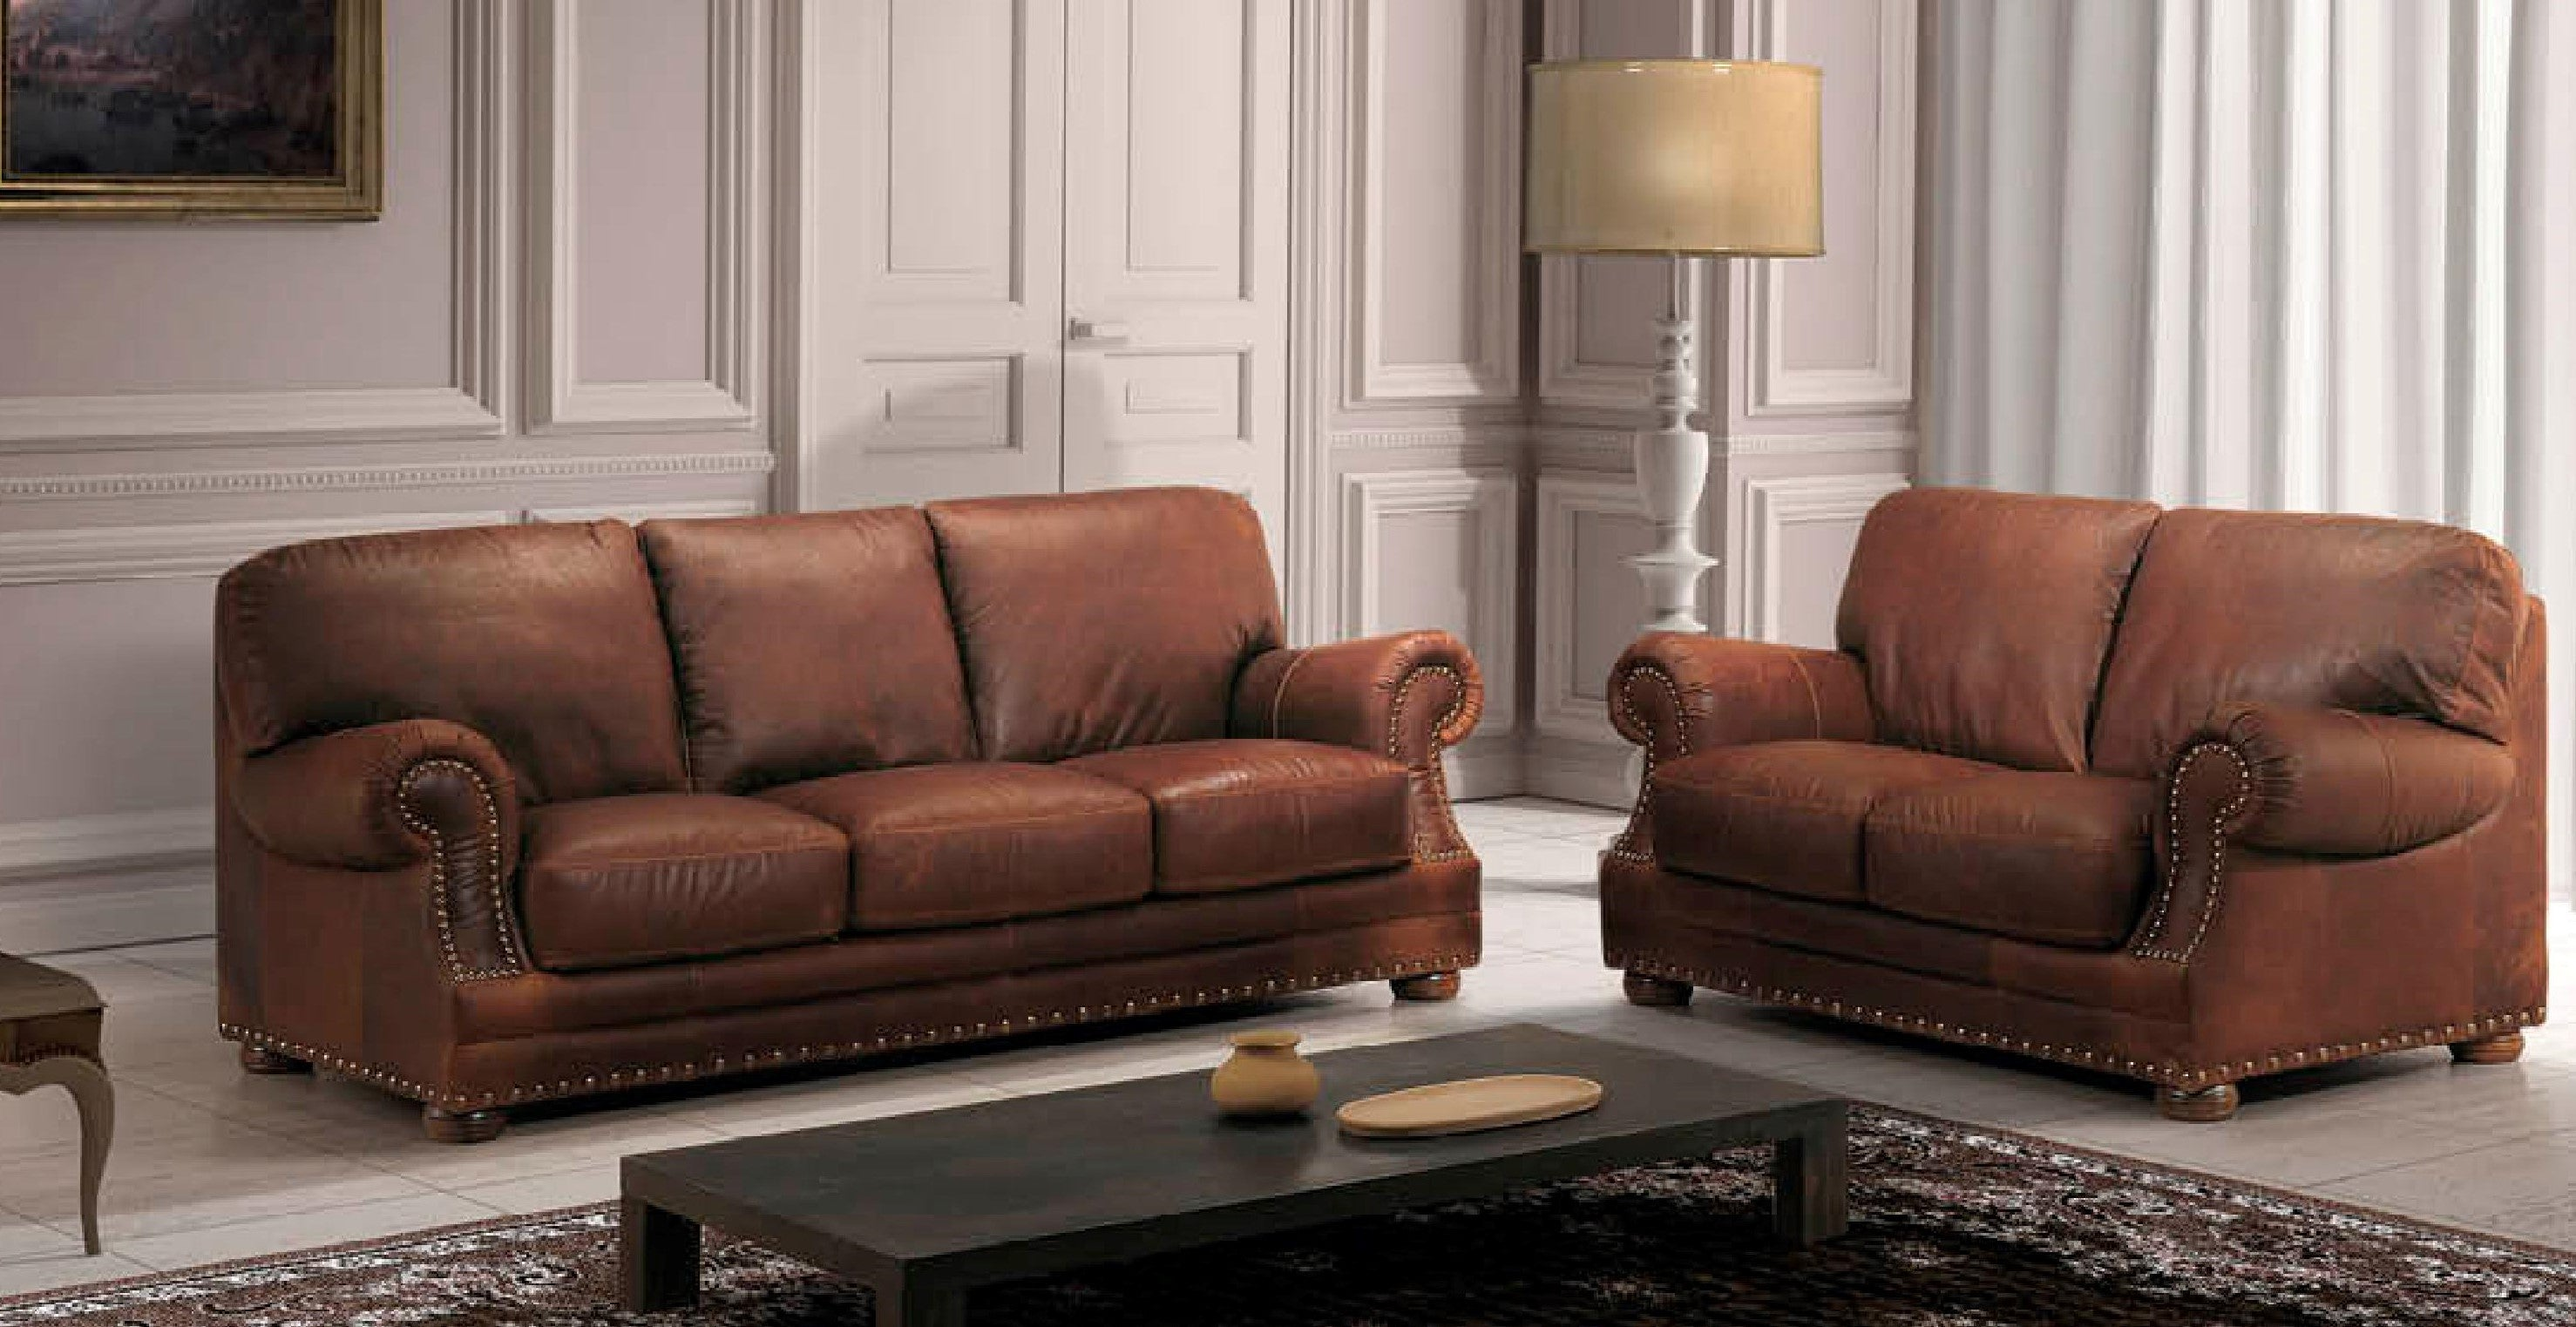 Luxury Leather Furniture in Sleaford